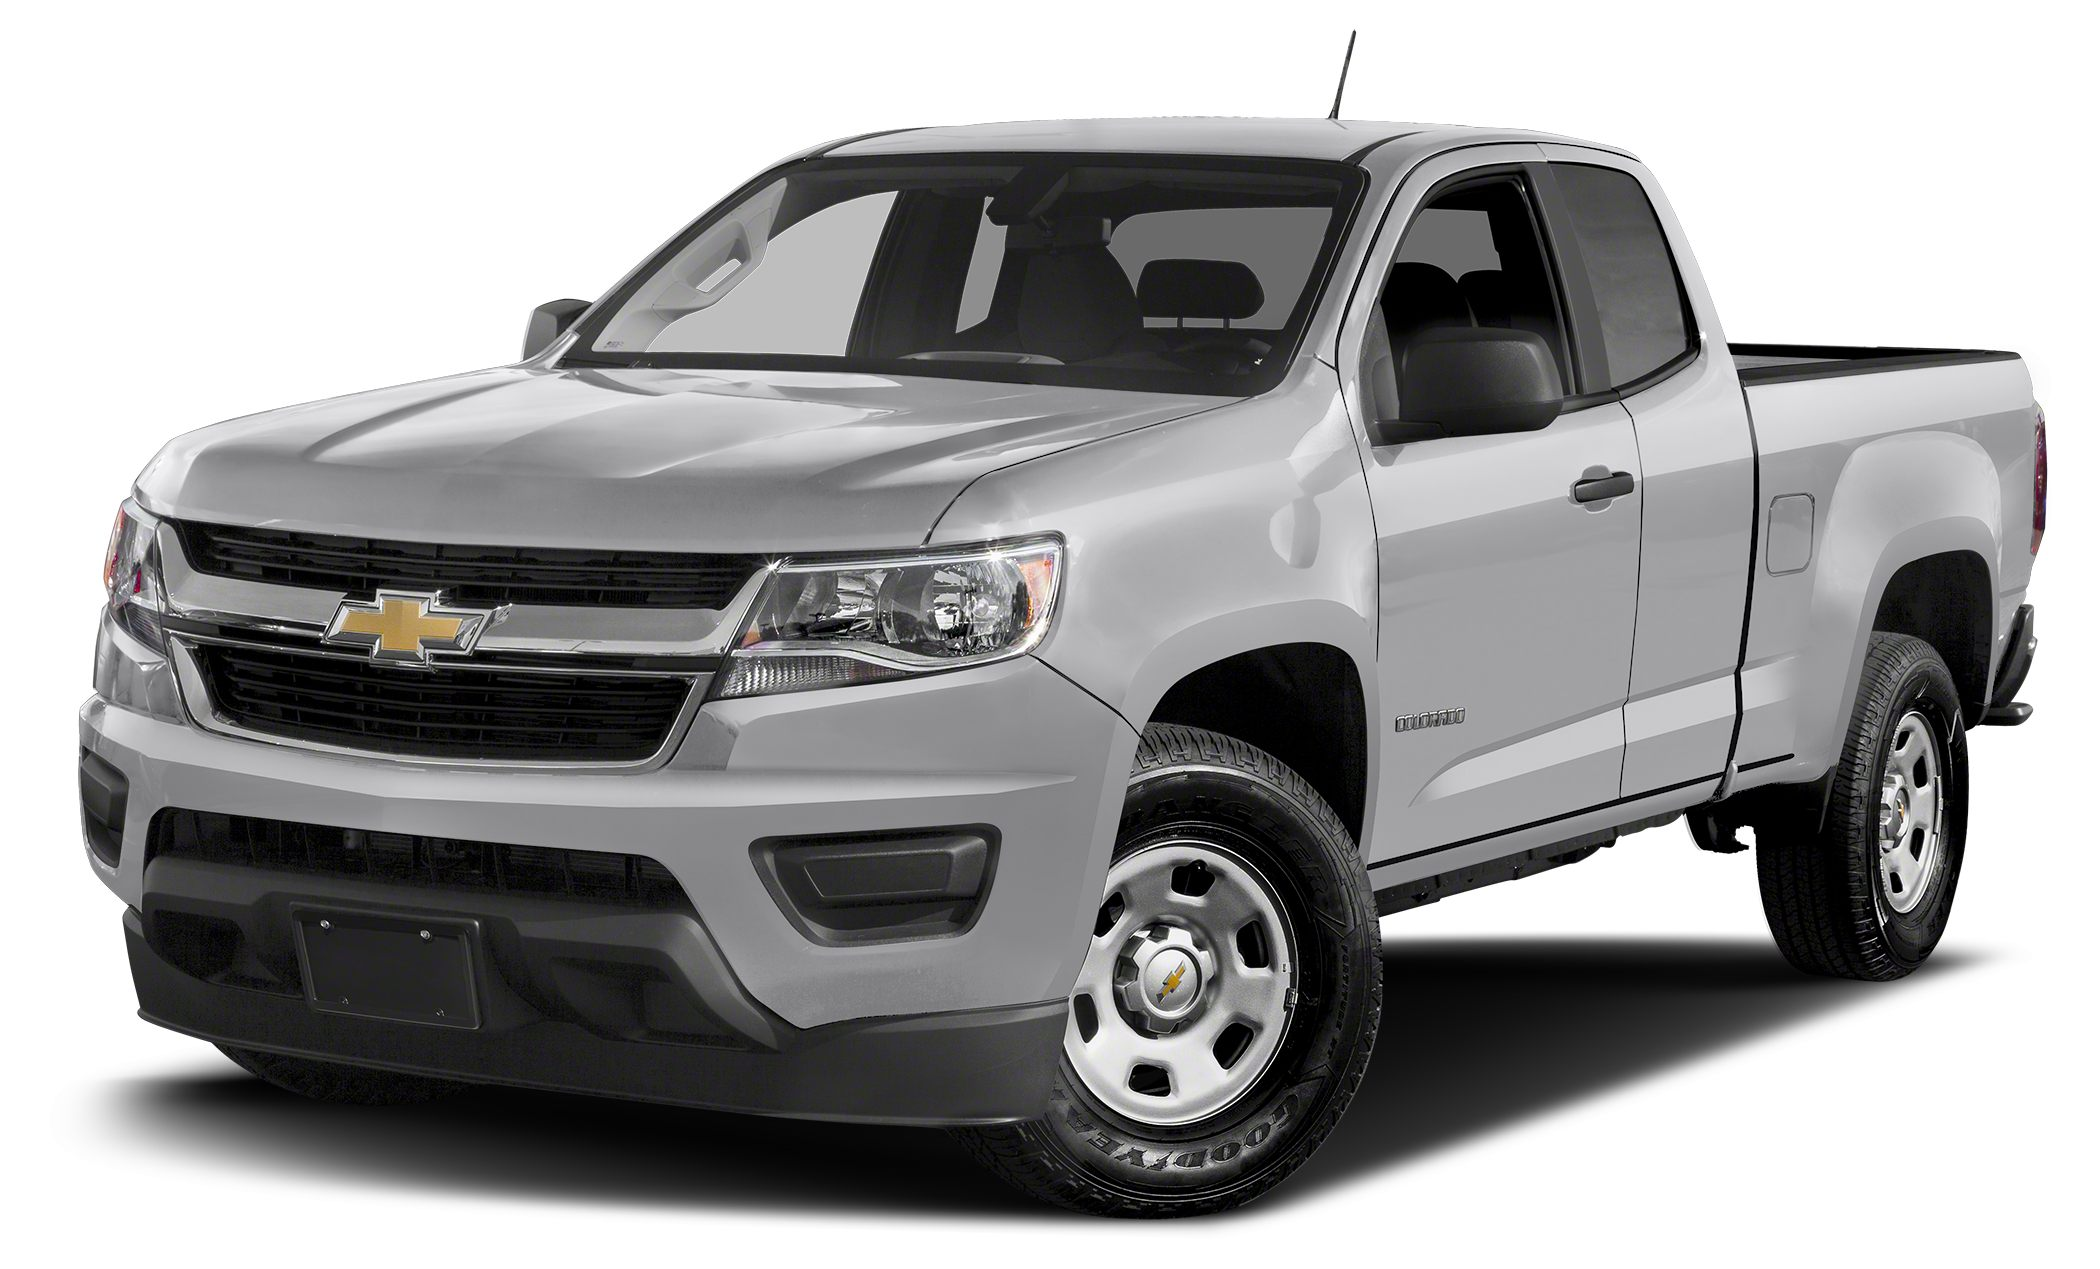 2018 Chevrolet Colorado WT Silver Ice Metallic 2018 Chevrolet Colorado Work Truck RWD 8-Speed Auto